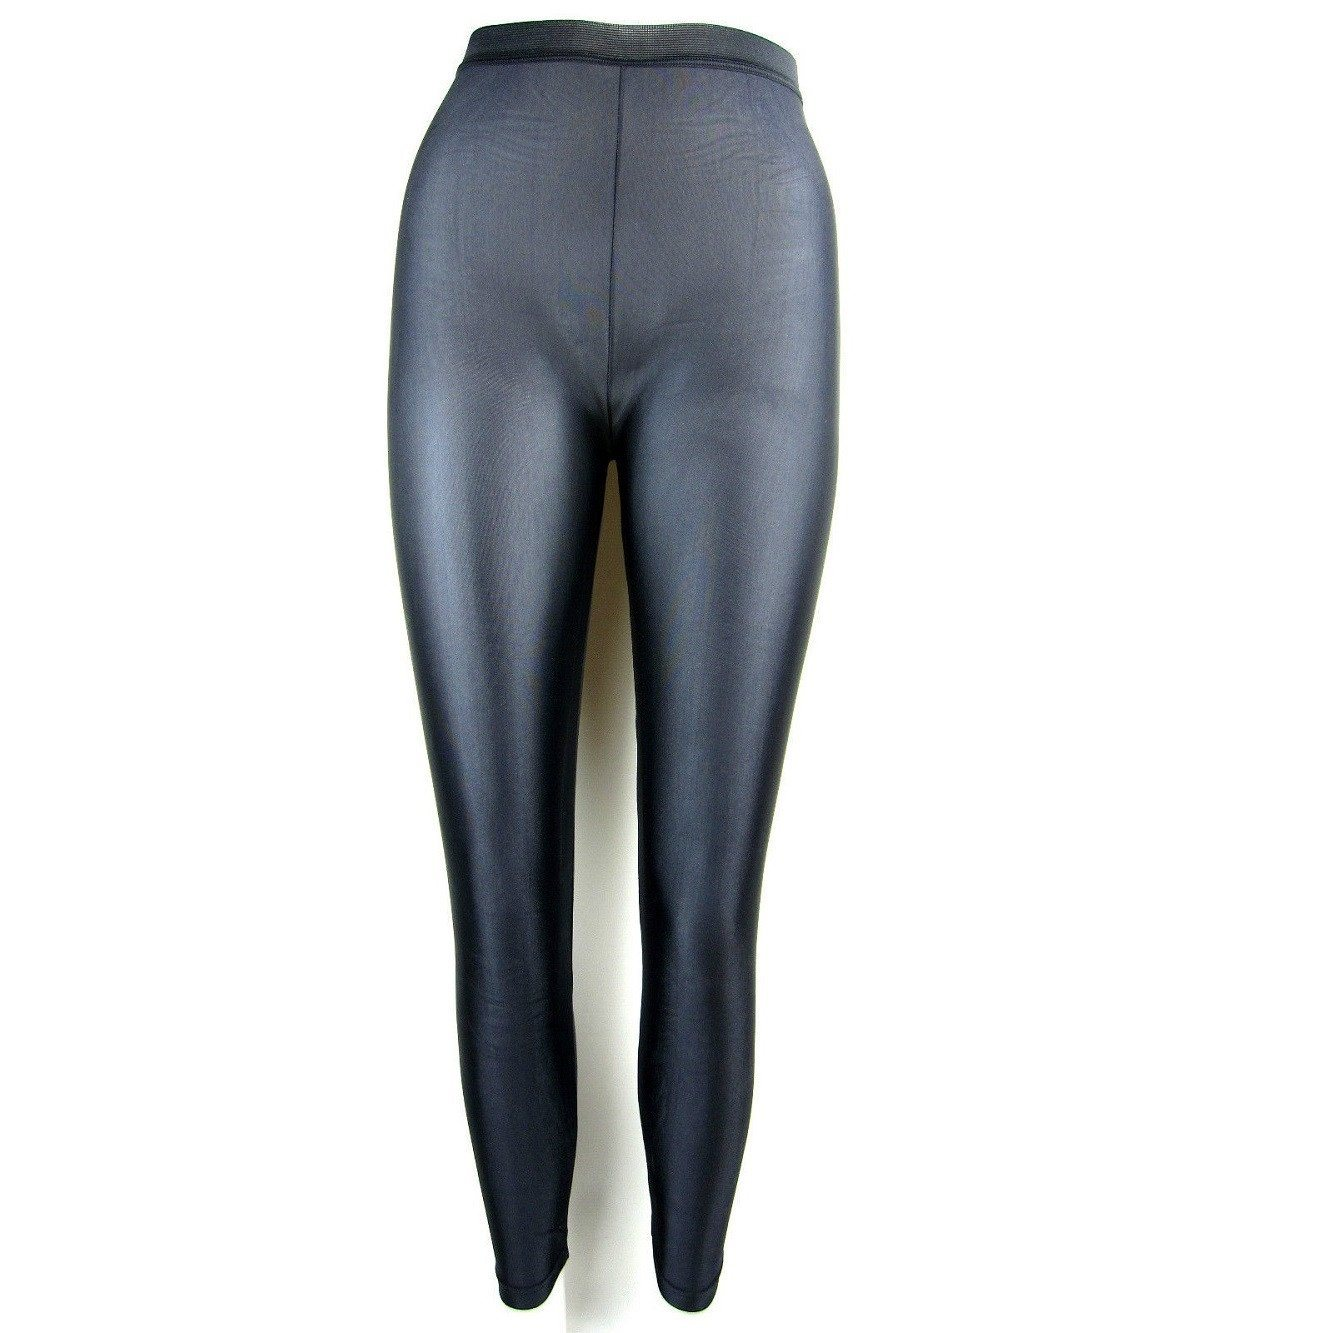 Sioree Shiny Disco Style Wet Look Leggings - Leggsbeautiful